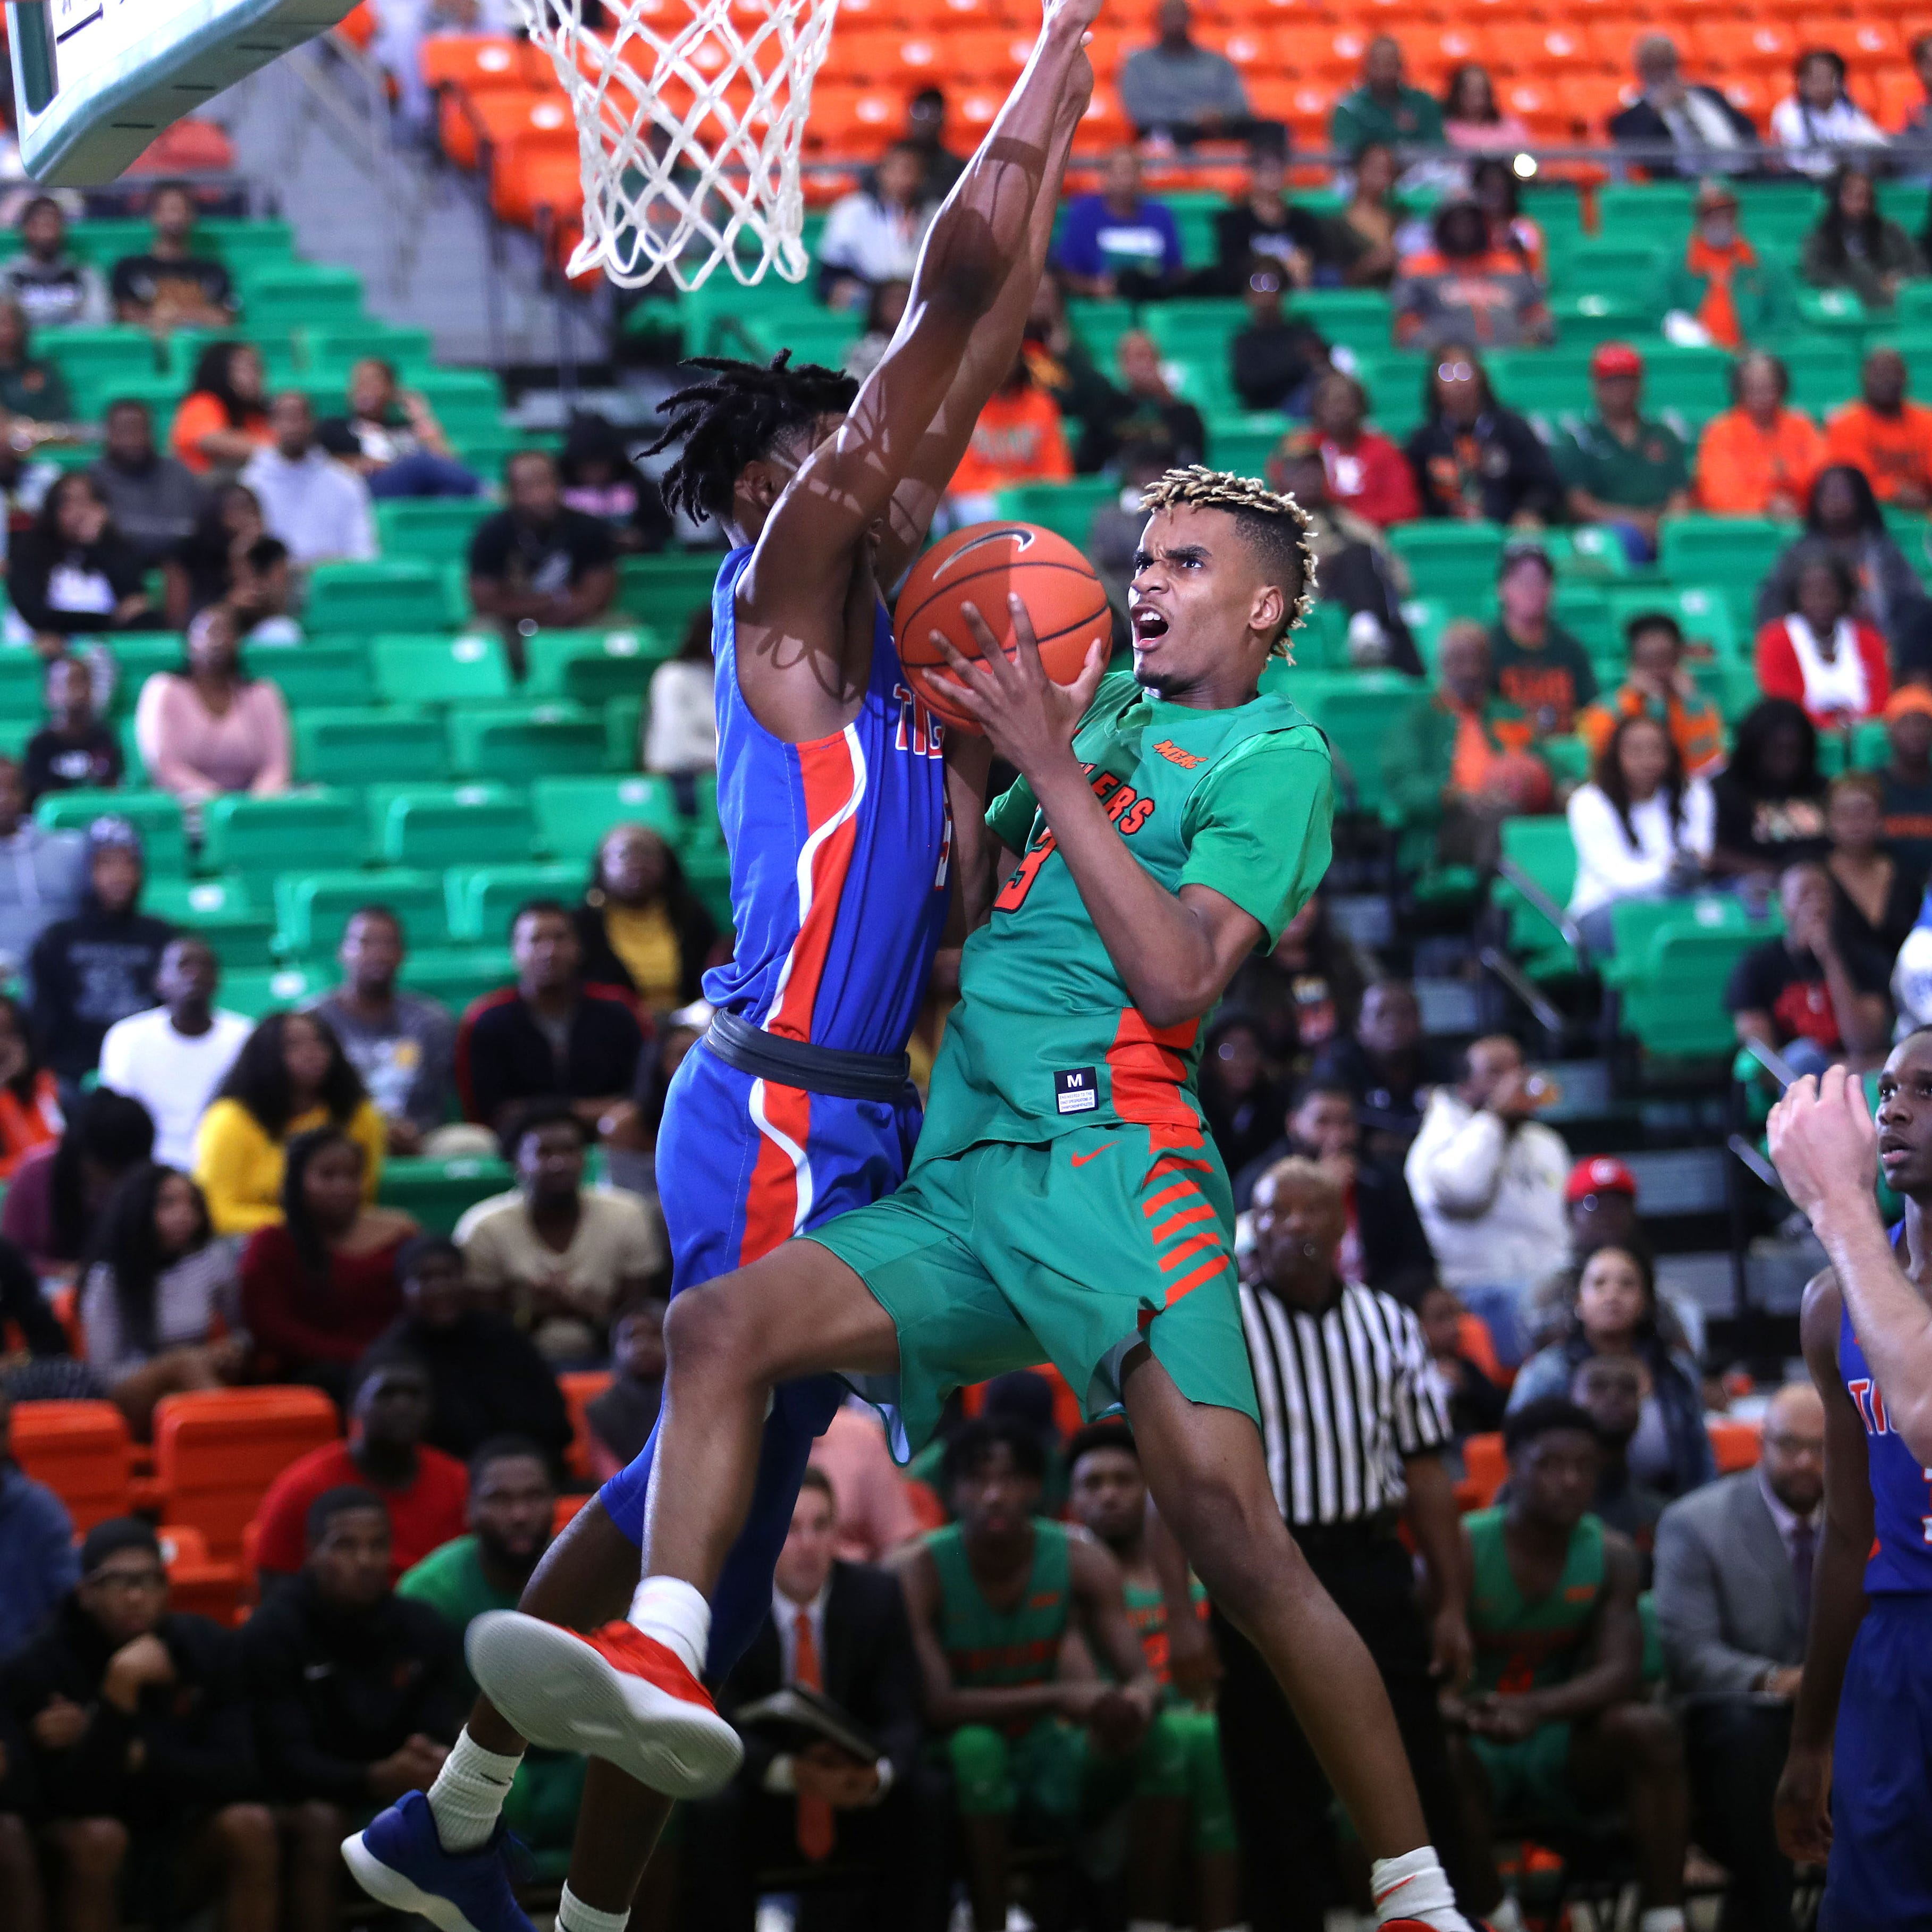 FAMU freshman M.J. Randolph 'works' his way into starting lineup